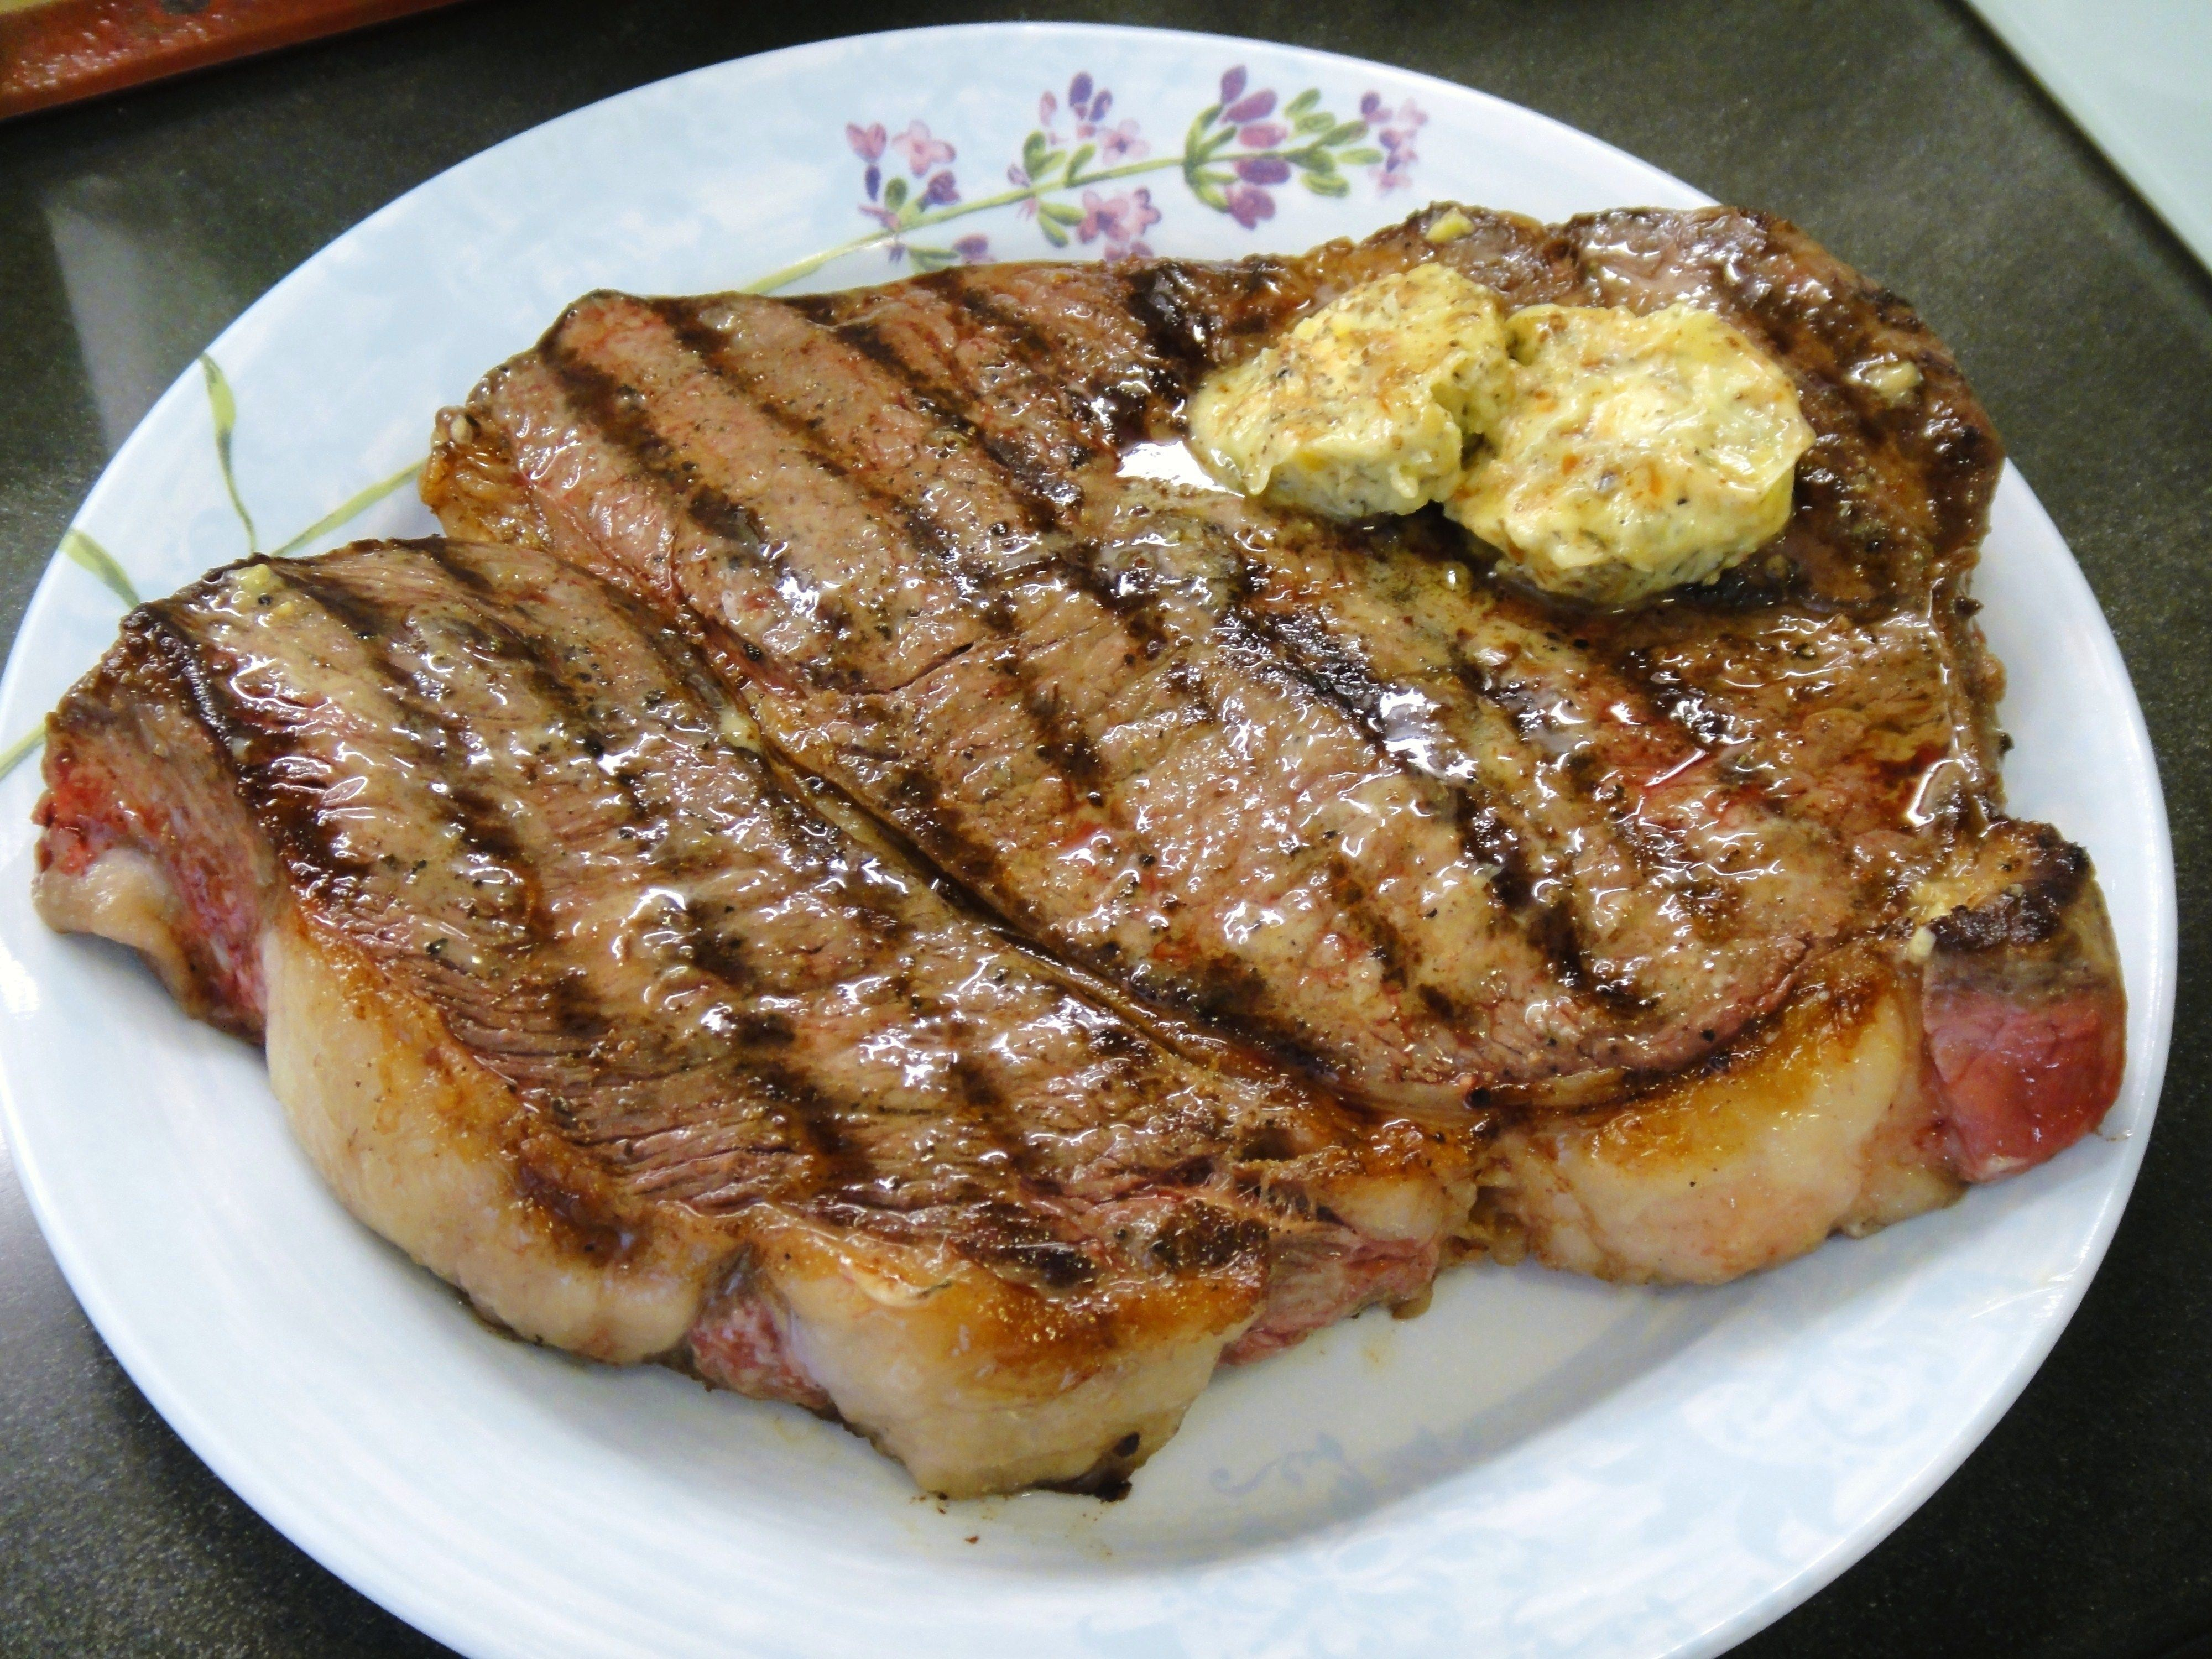 Grilled sirloin steak topped with homemade rosemary thyme